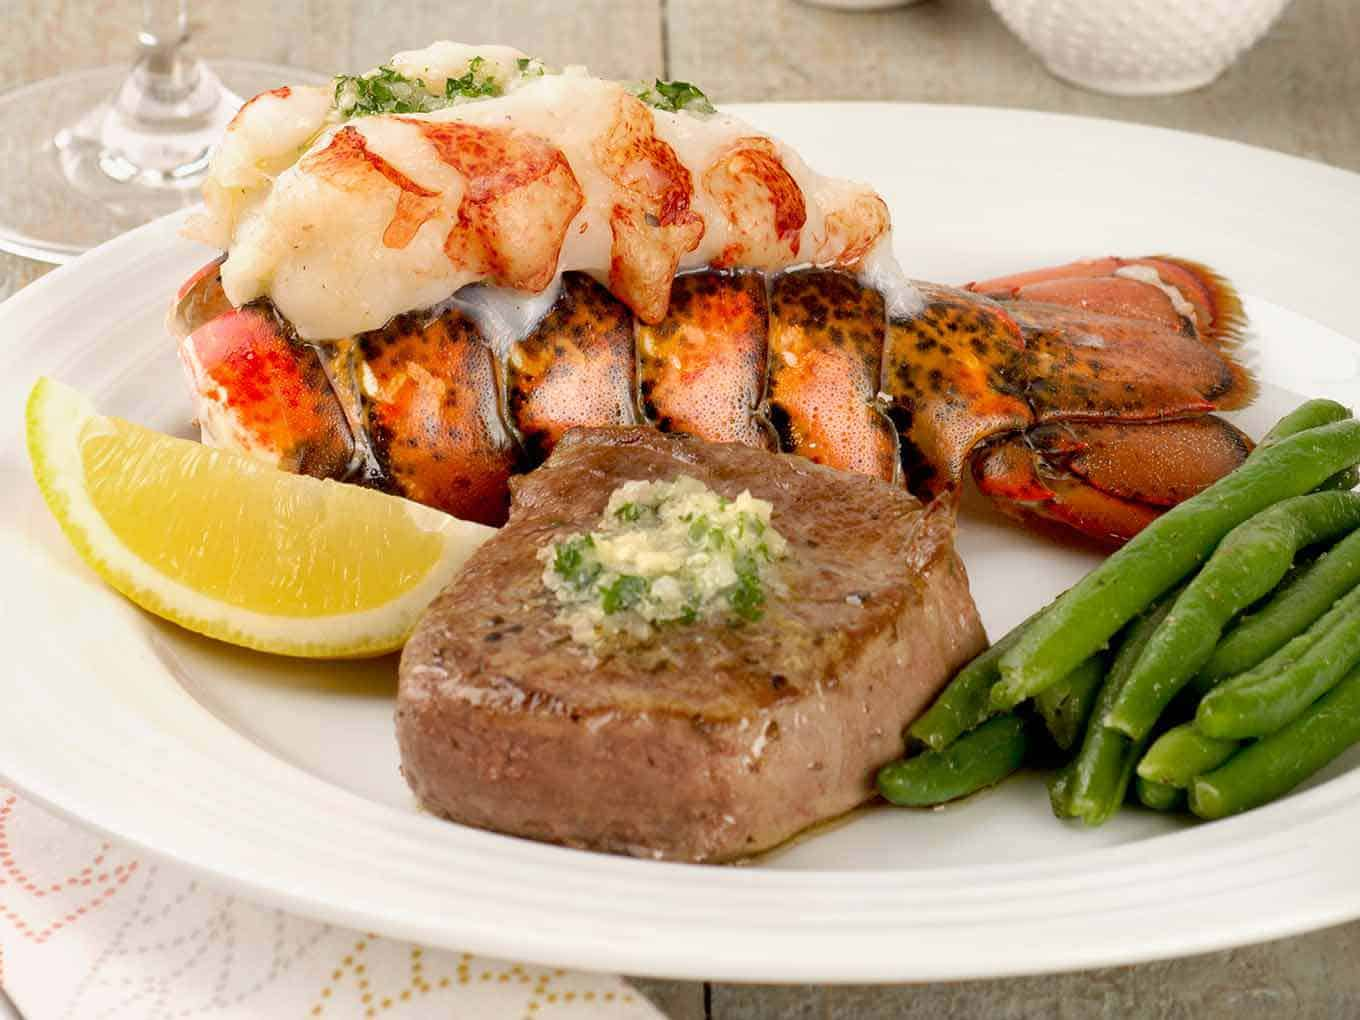 Single serving of filet mignon and lobster tail topped with compound butter